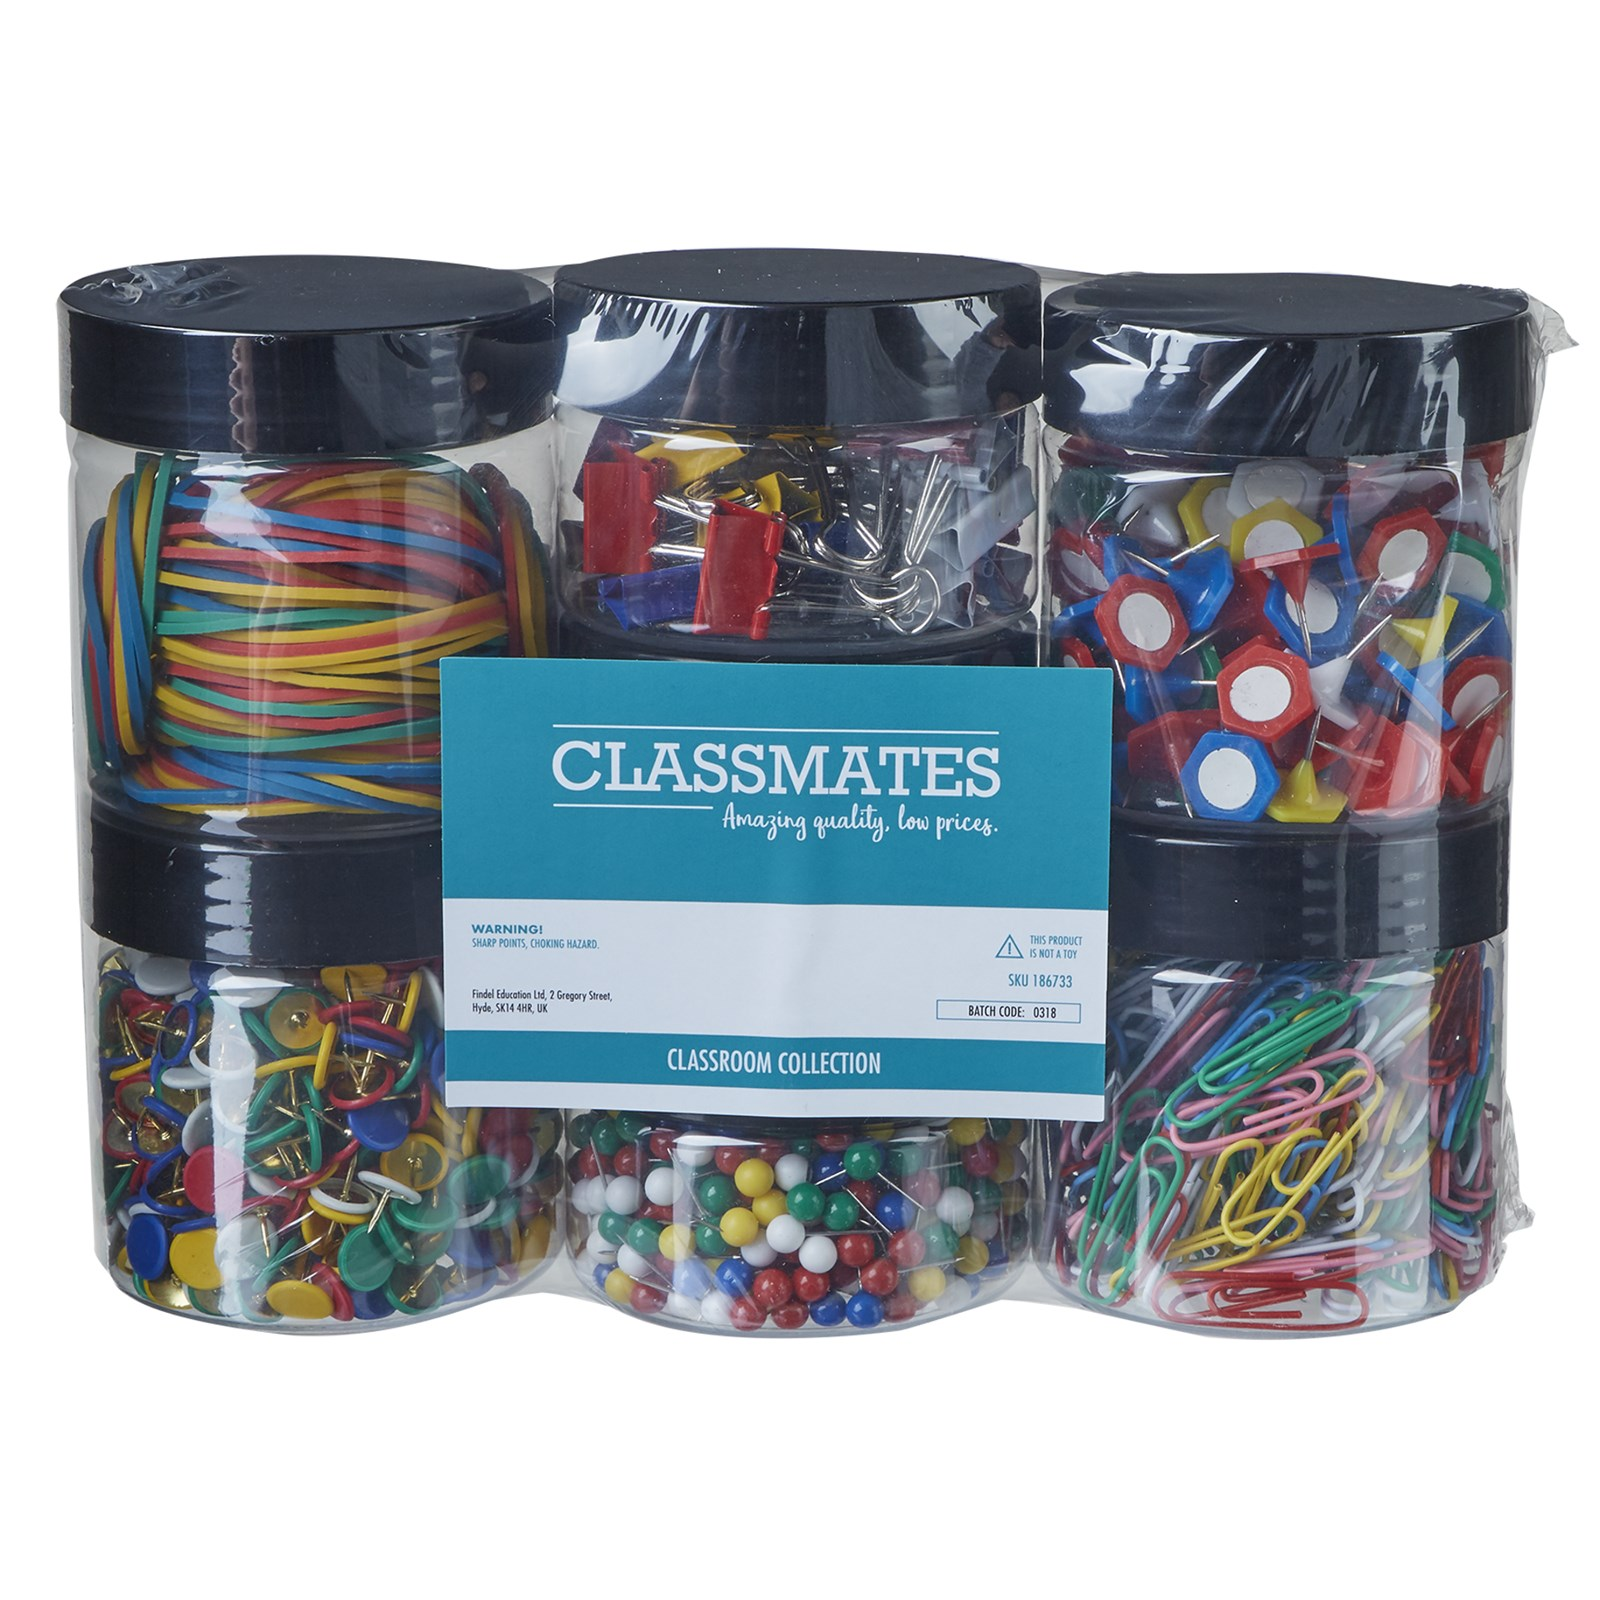 Classmates Stationery Pack - Pack of 6